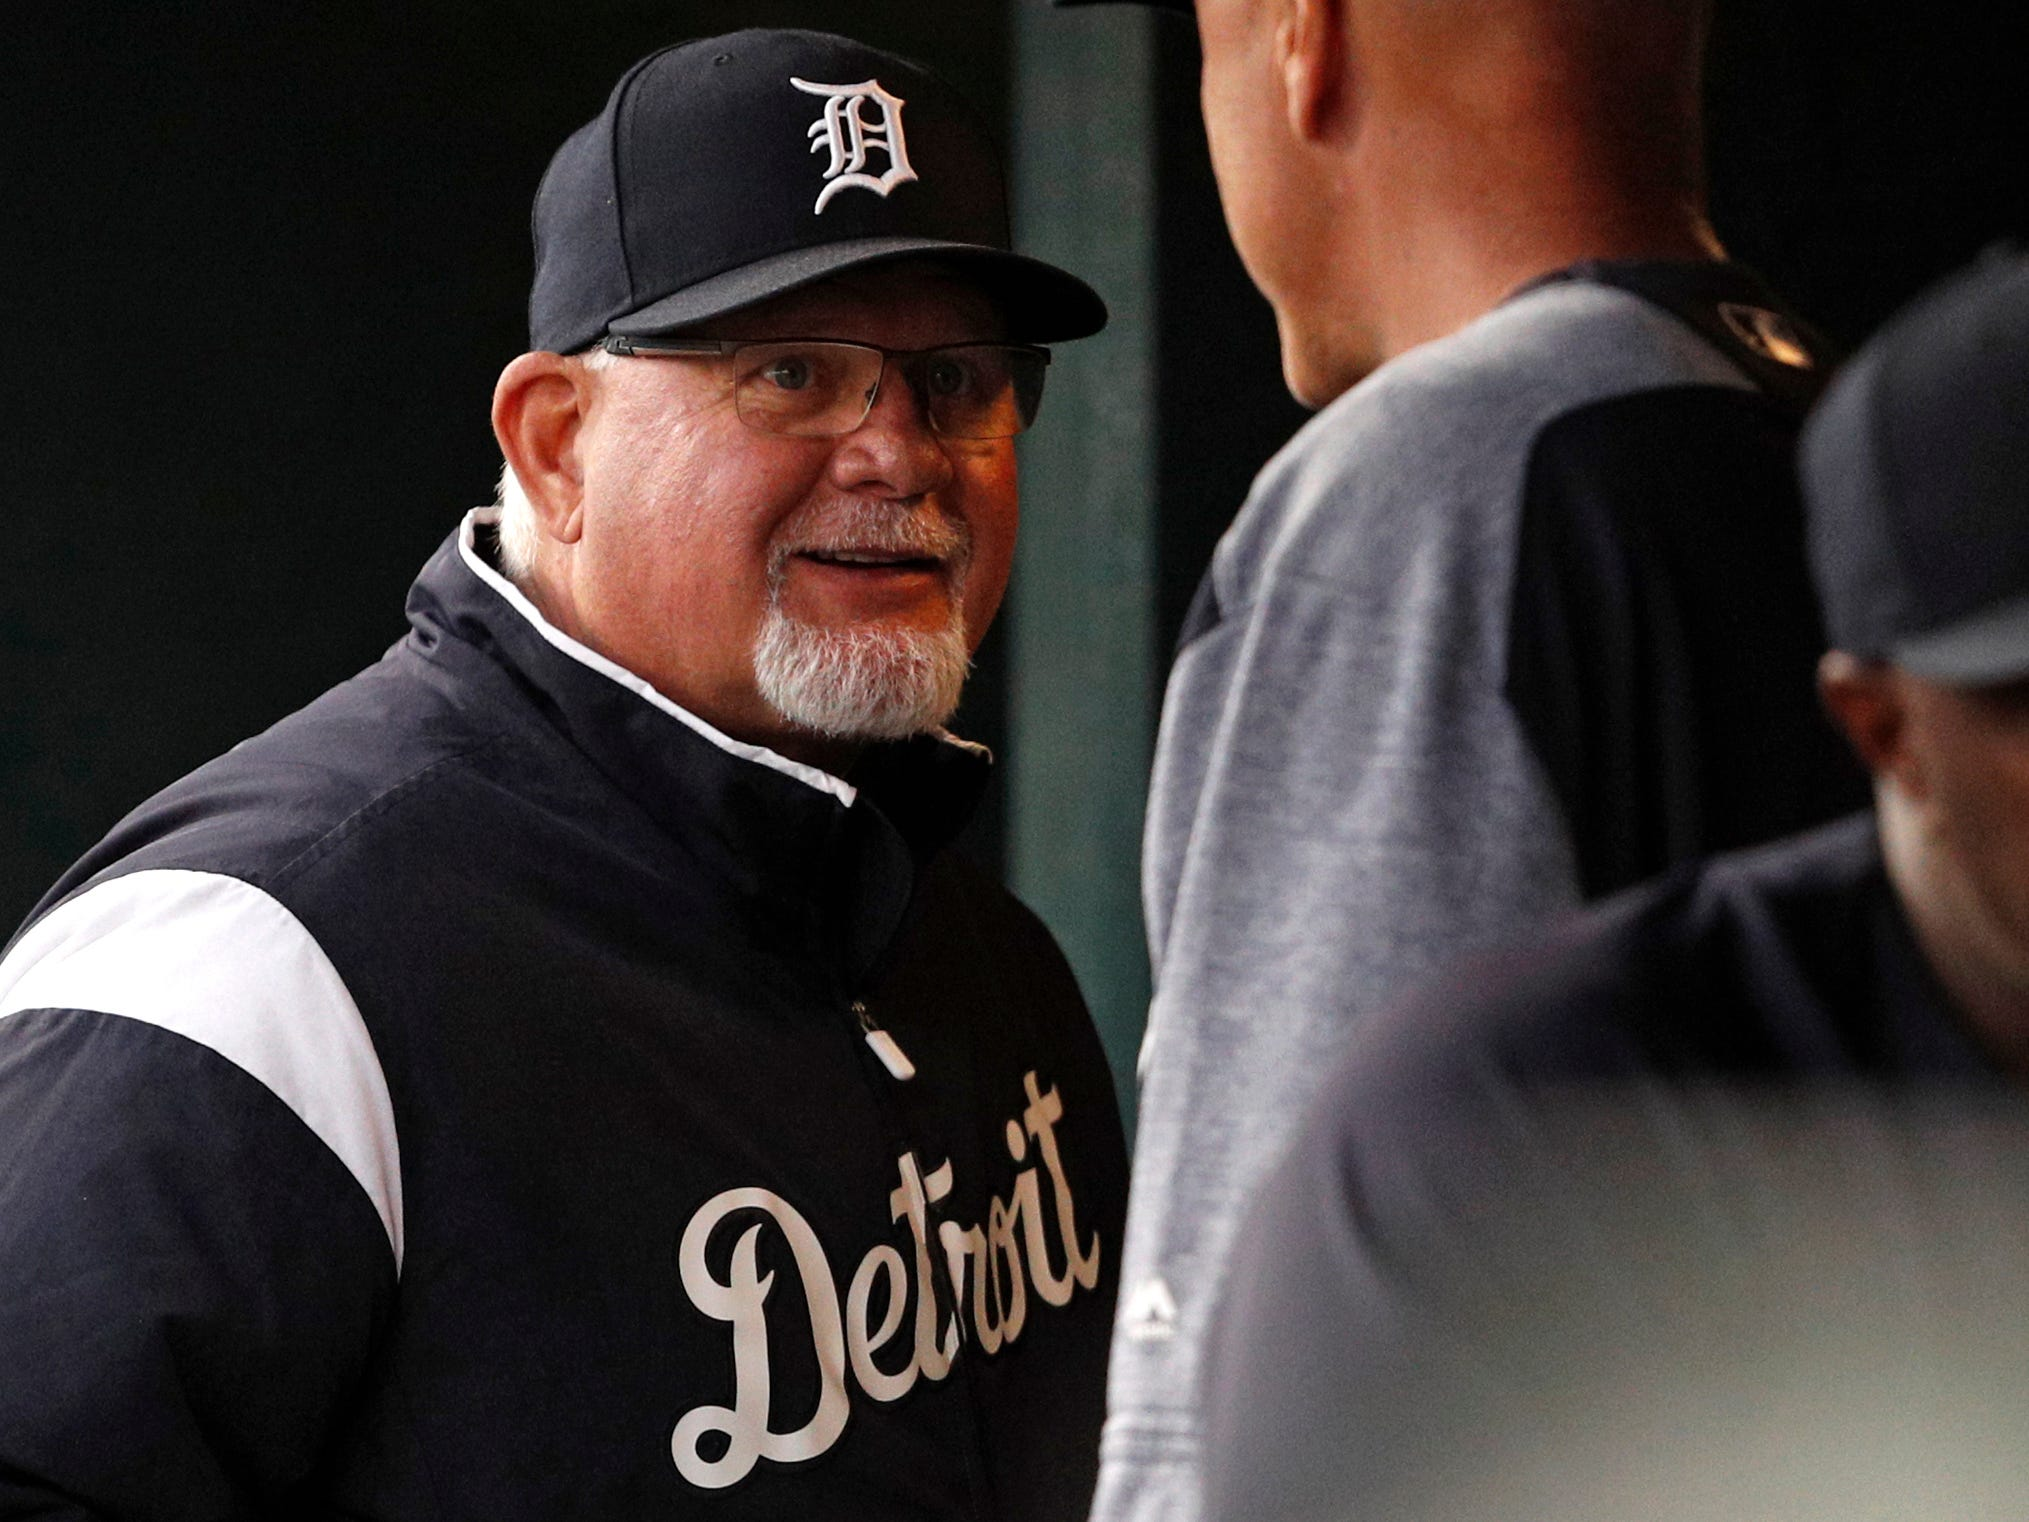 Detroit Tigers manager Ron Gardenhire smiles in the dugout during the fourth inning against the Kansas City Royals at Comerica Park on Sept. 22, 2018.